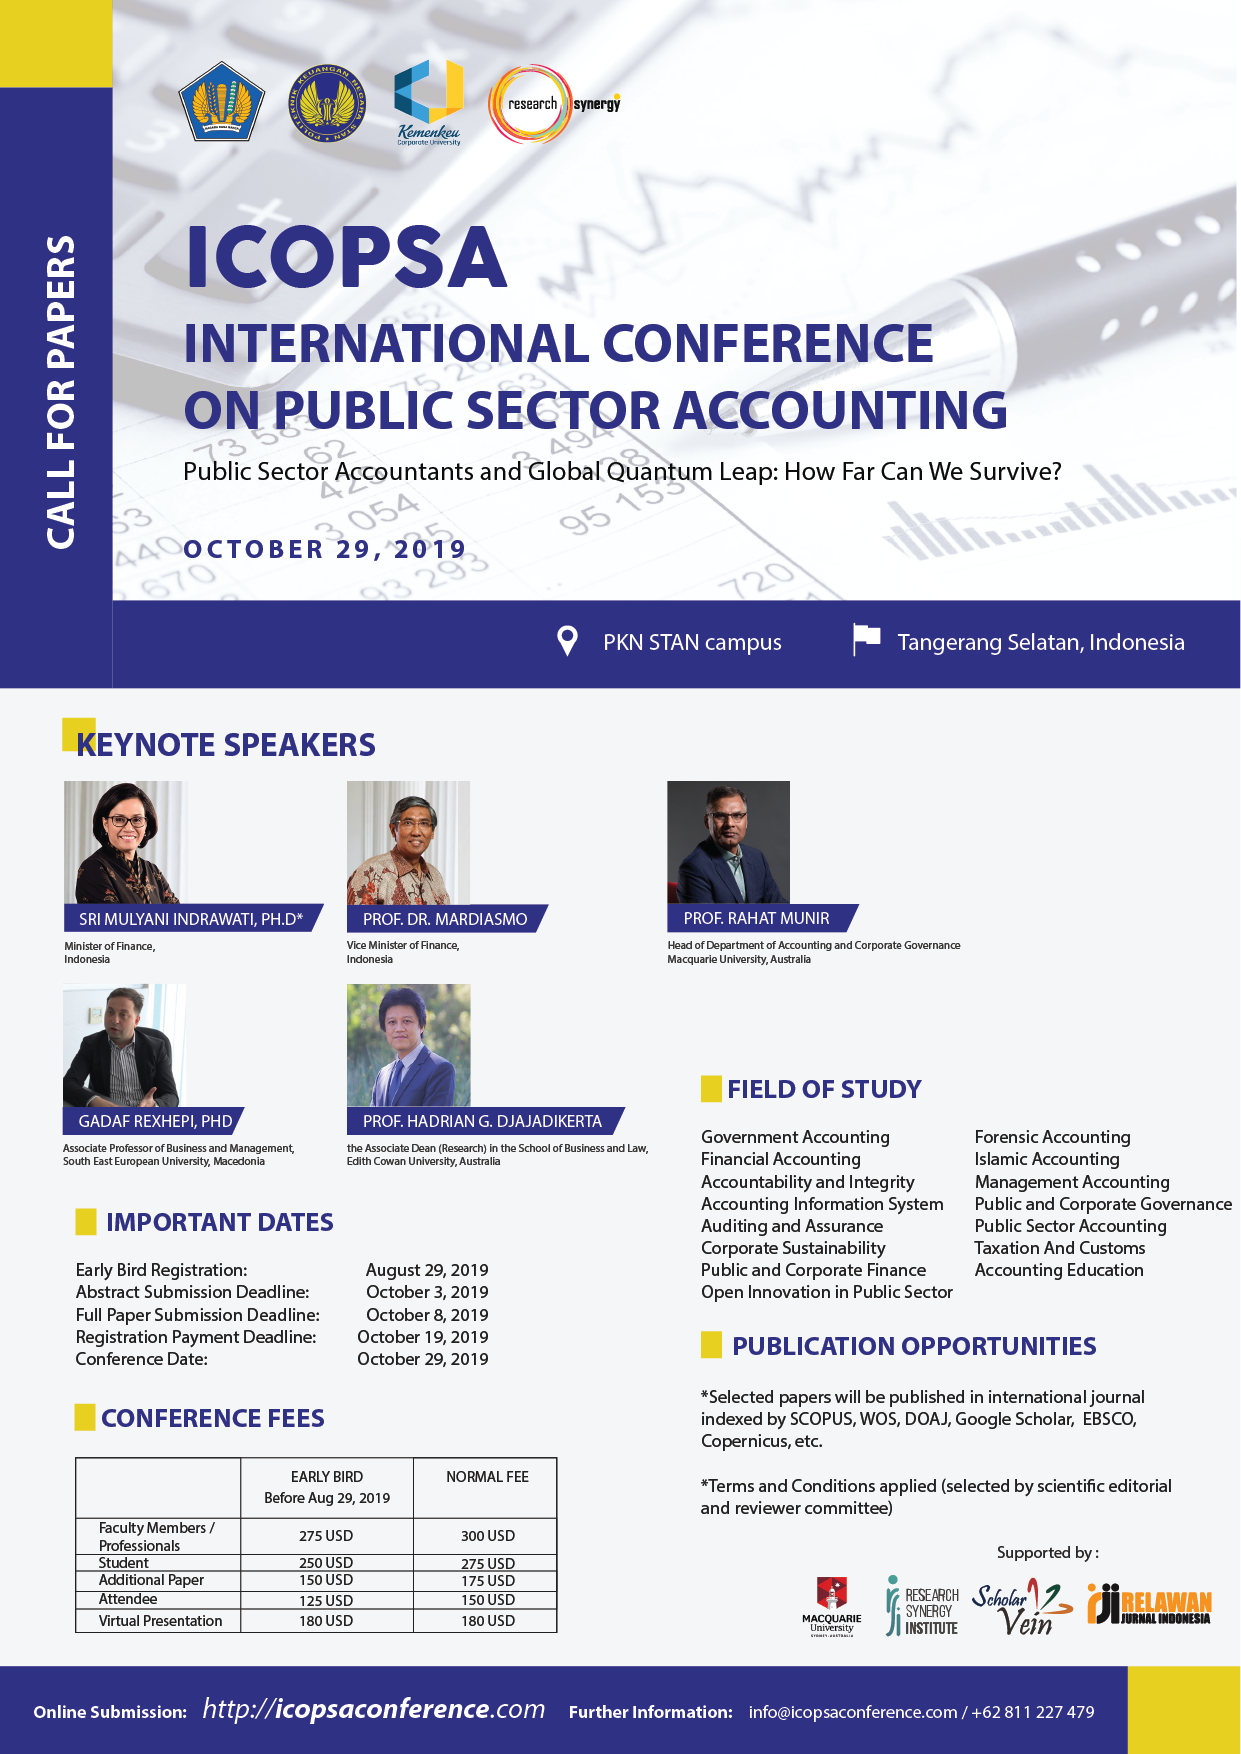 International Conference on Public Sector Accounting (ICOPSA)